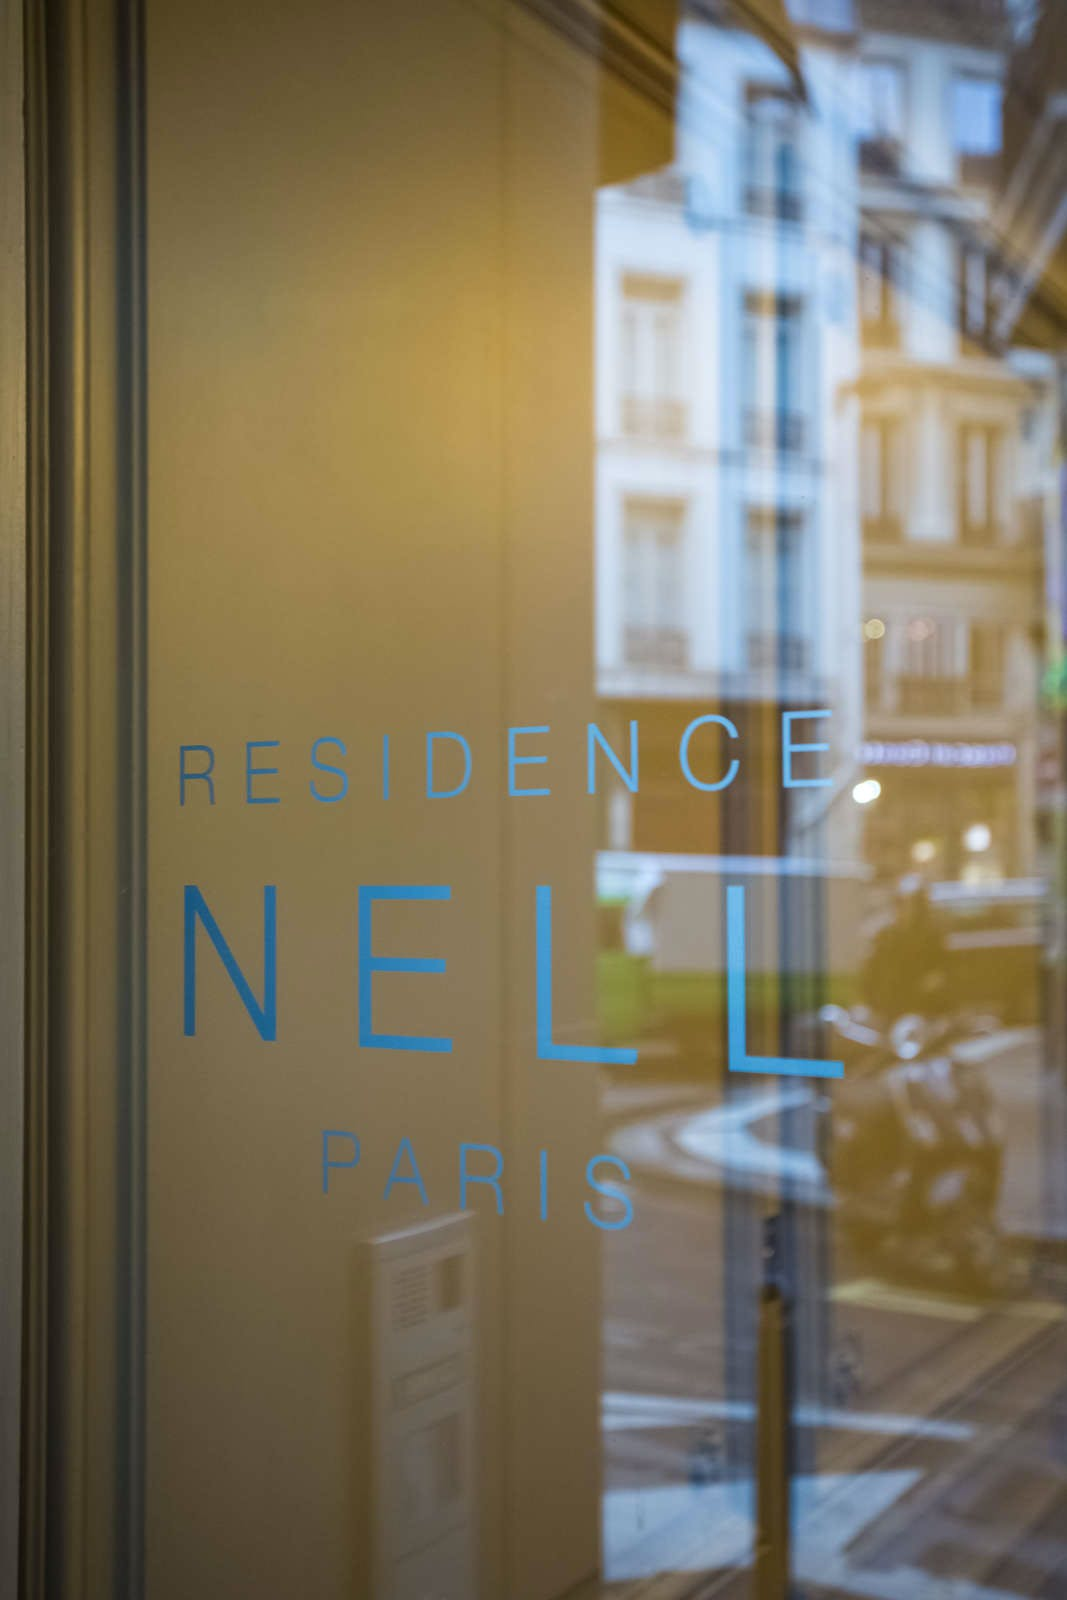 Nell Hotel & Suites